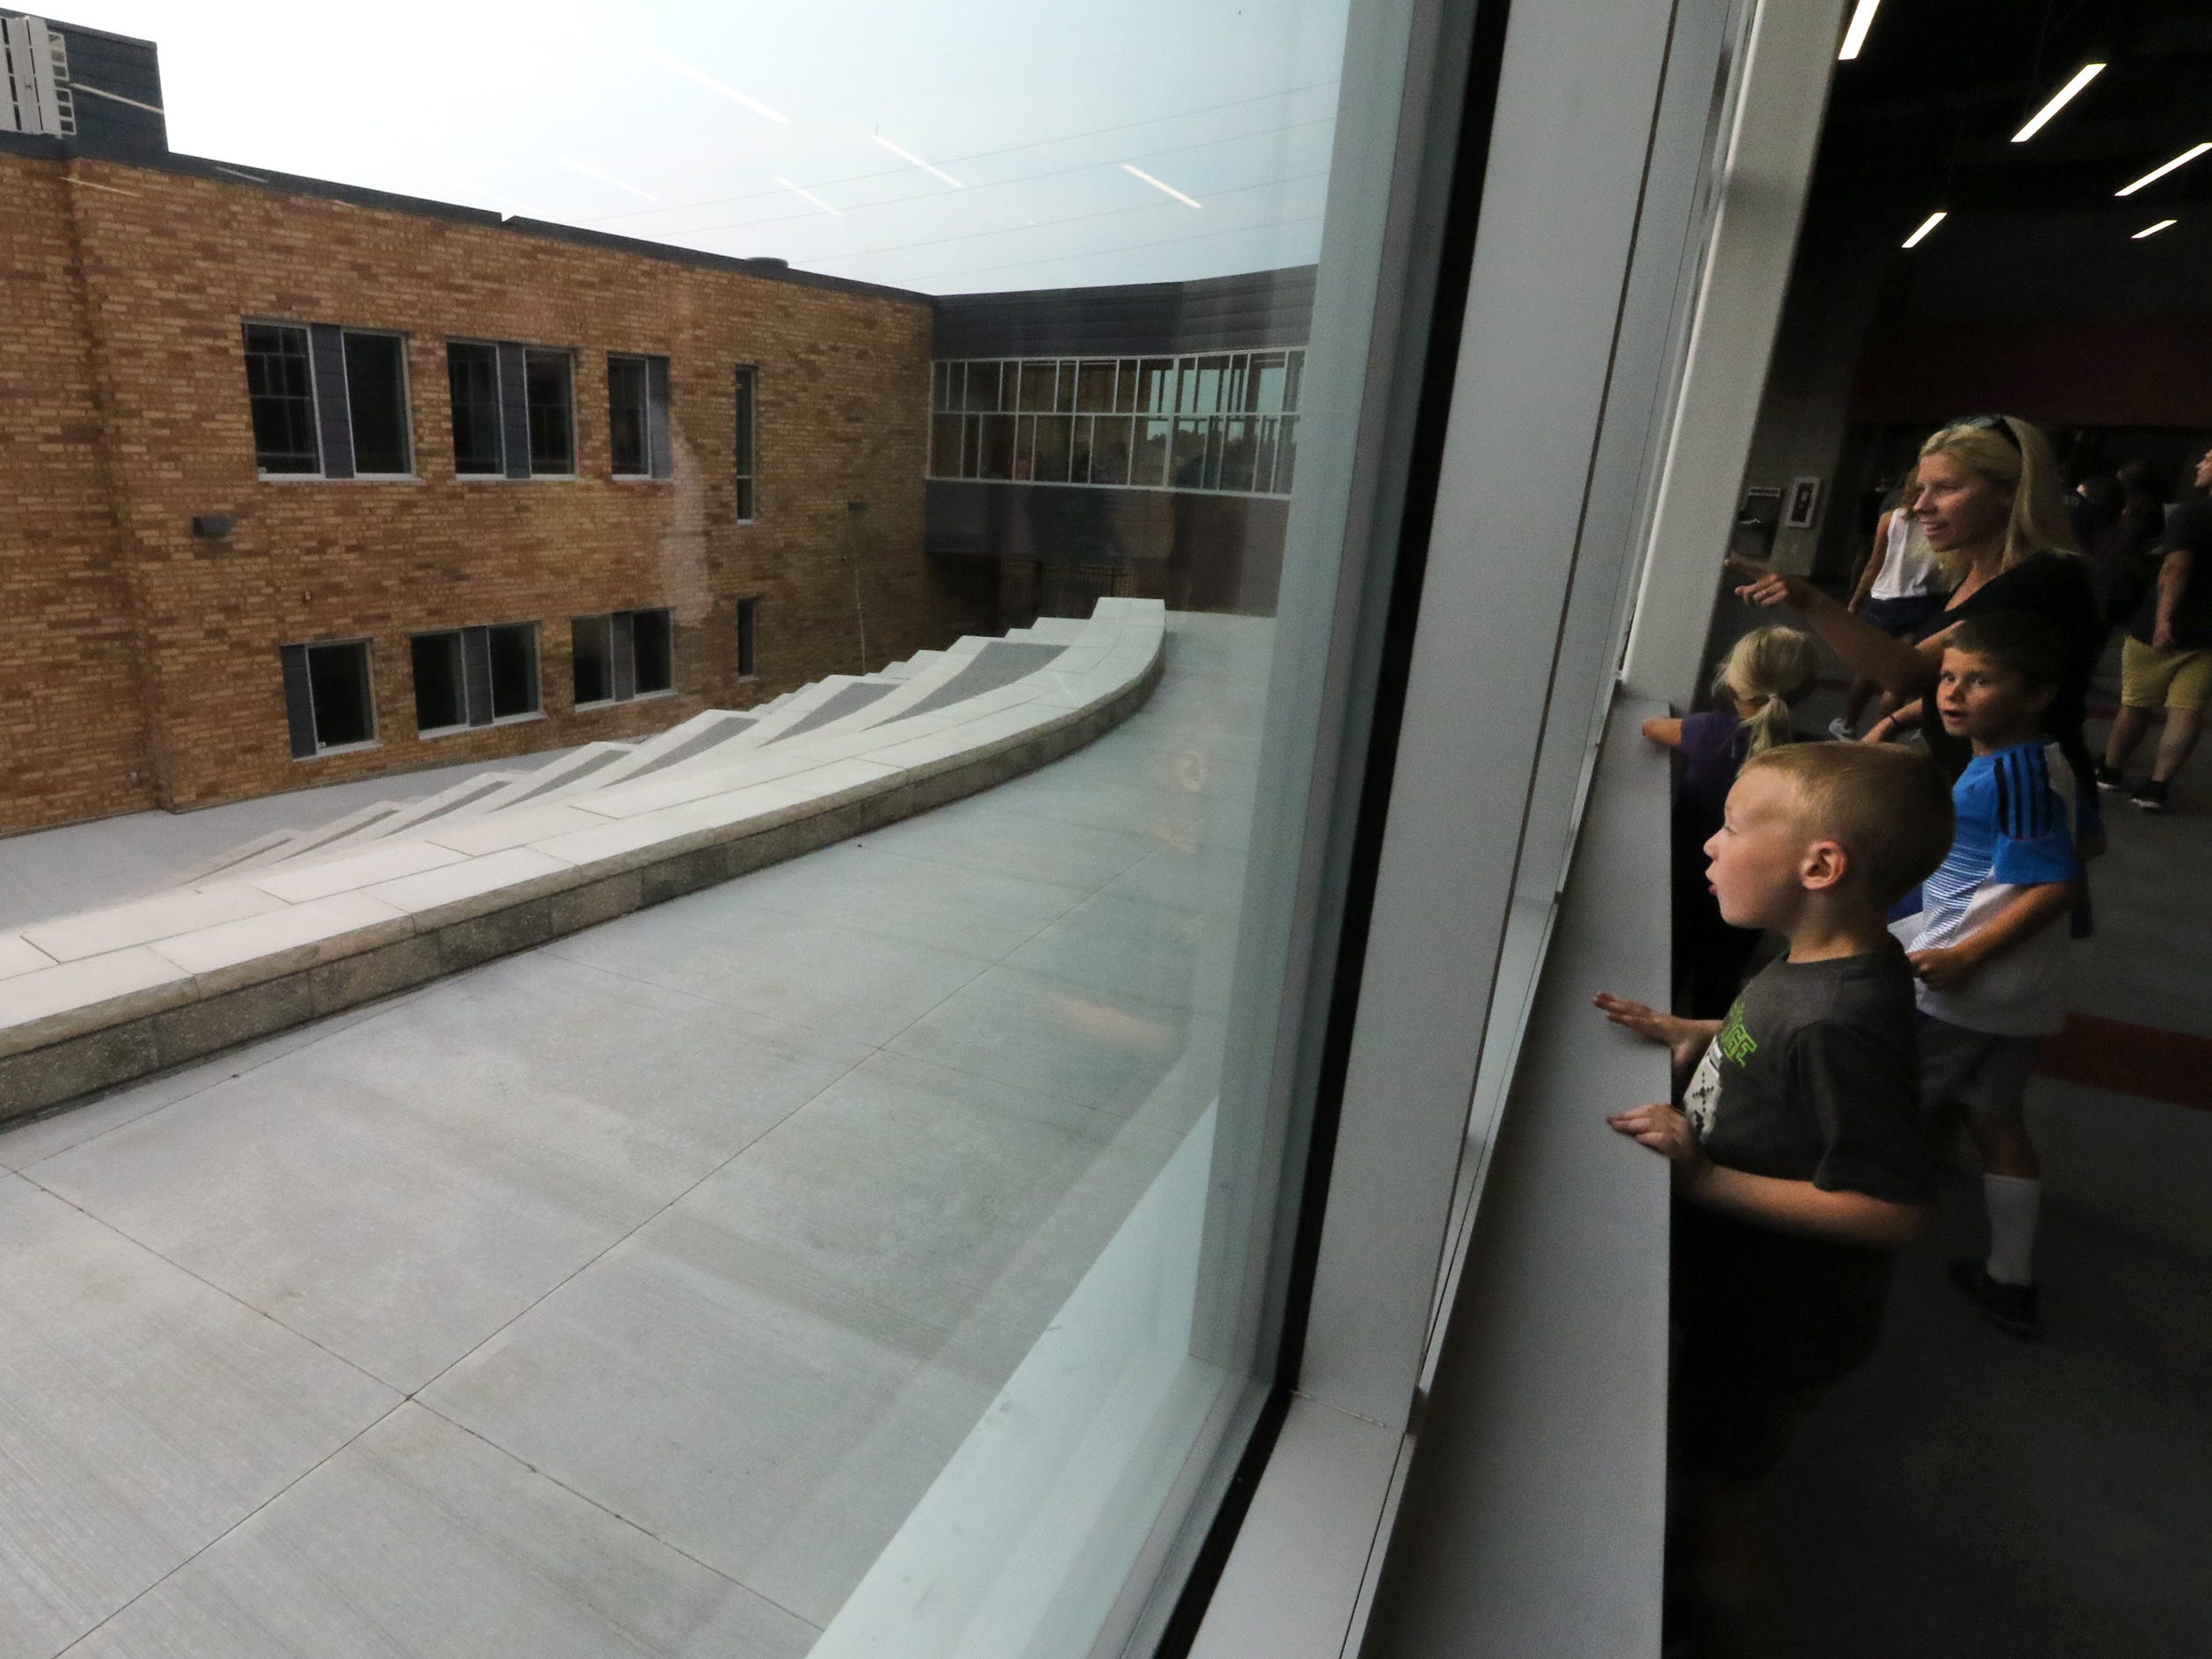 Visitors look at an outdoor large-group area in the courtyard of Muskego Lakes Middle School during an open house on Aug. 14.